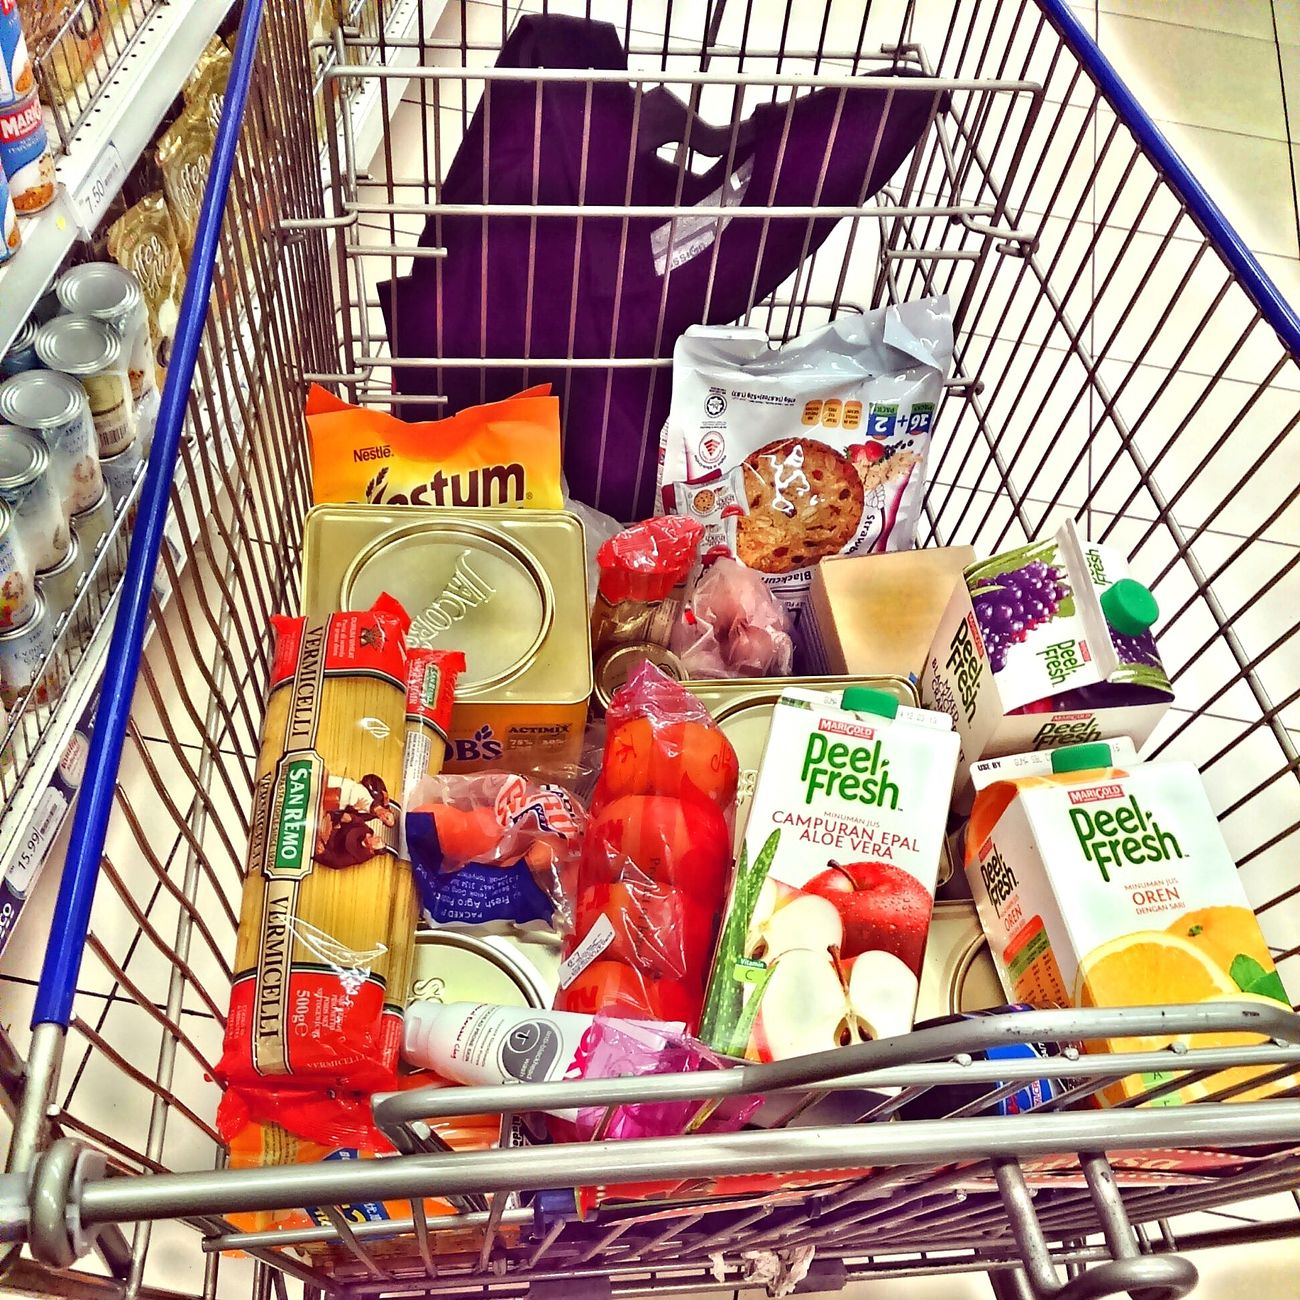 Groceryshopping Loveshopping Walking Alone...